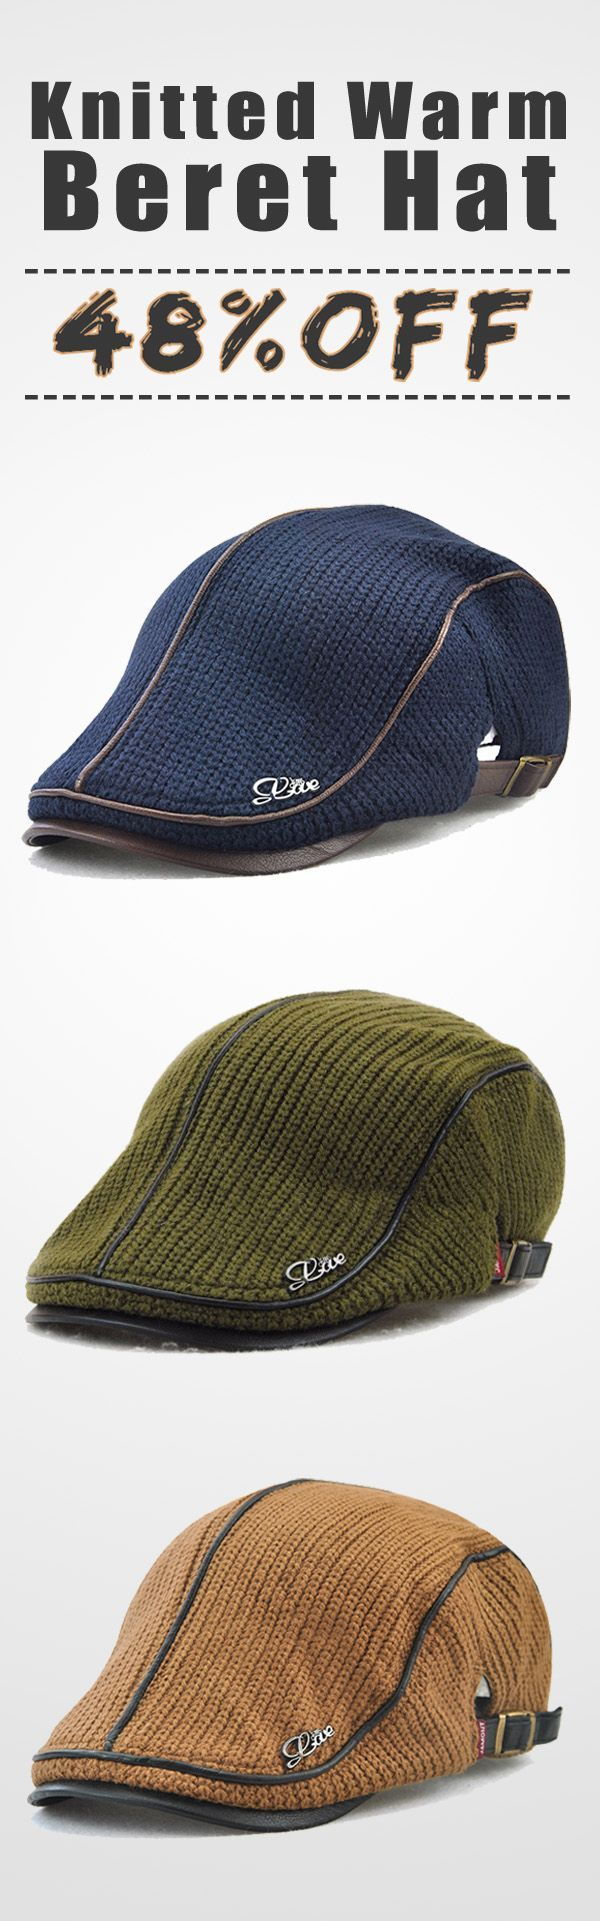 b563d04dd1b39 Unisex Knitted Warm Beret Hat Knitting Buckle Paper Boy Newsboy Cabbie  Gentleman Visor Cap